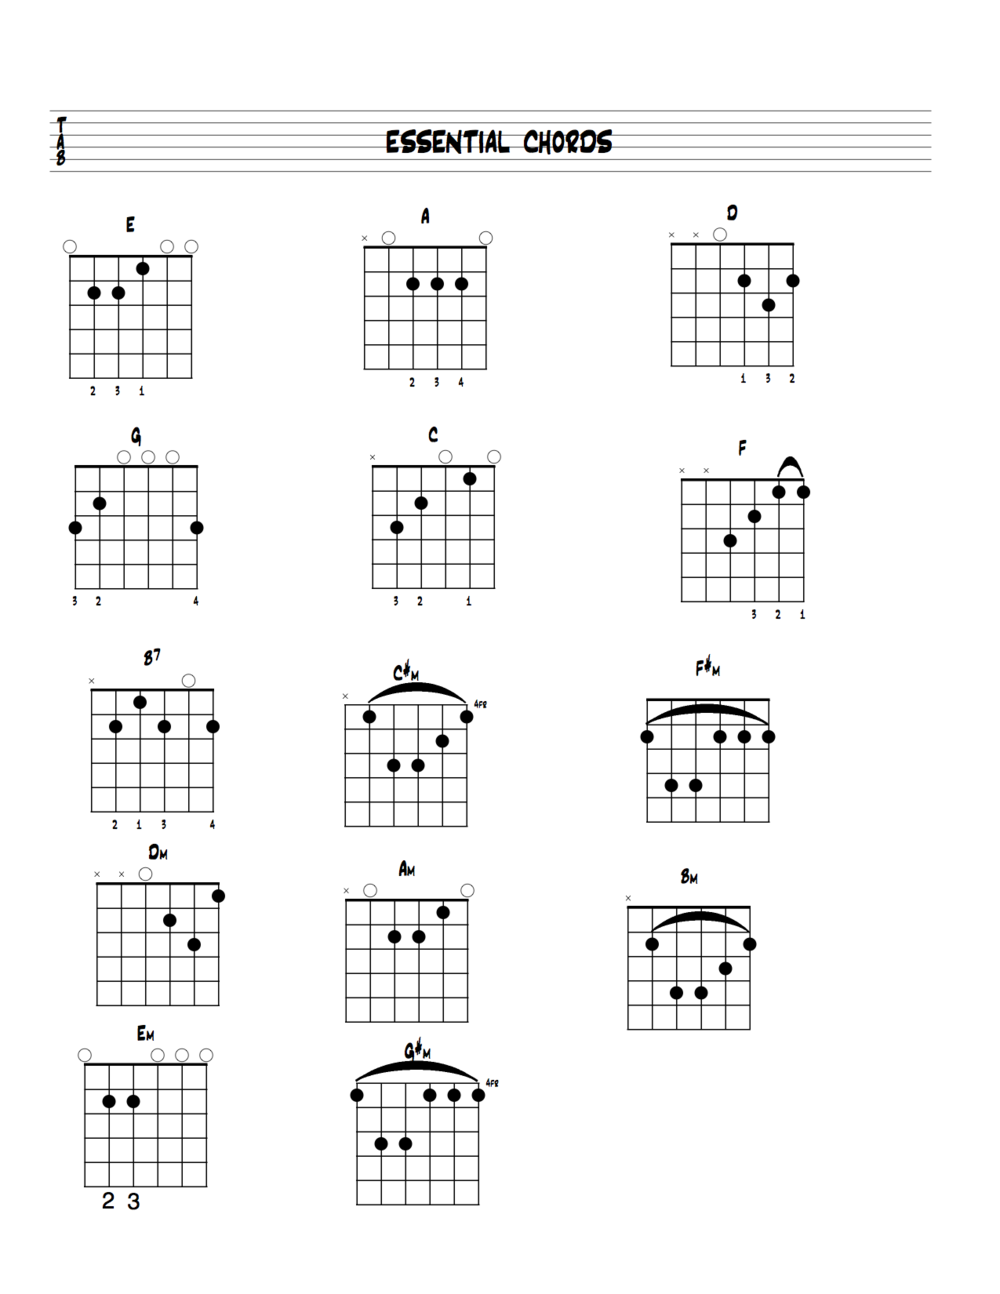 essential chords.png